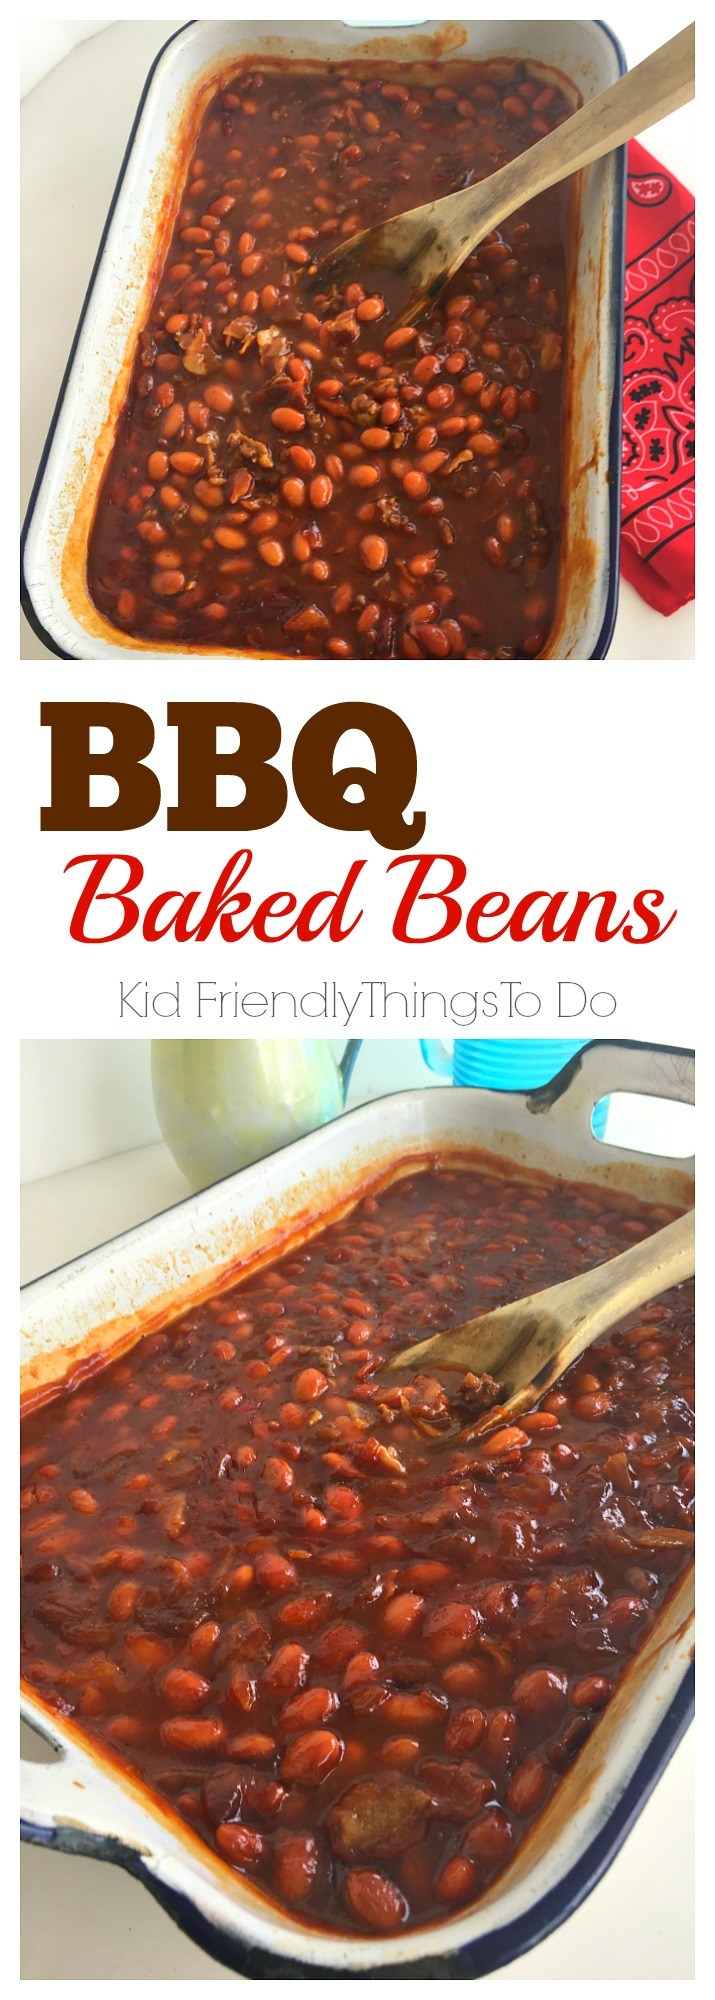 Over 33 Easy Easter Side Dish Recipes that will remind you of those traditional down home sides you grew up with! Vegetables, Potatoes, Casseroles, Deviled Eggs and more! www.kidfriendlythingstodo.com